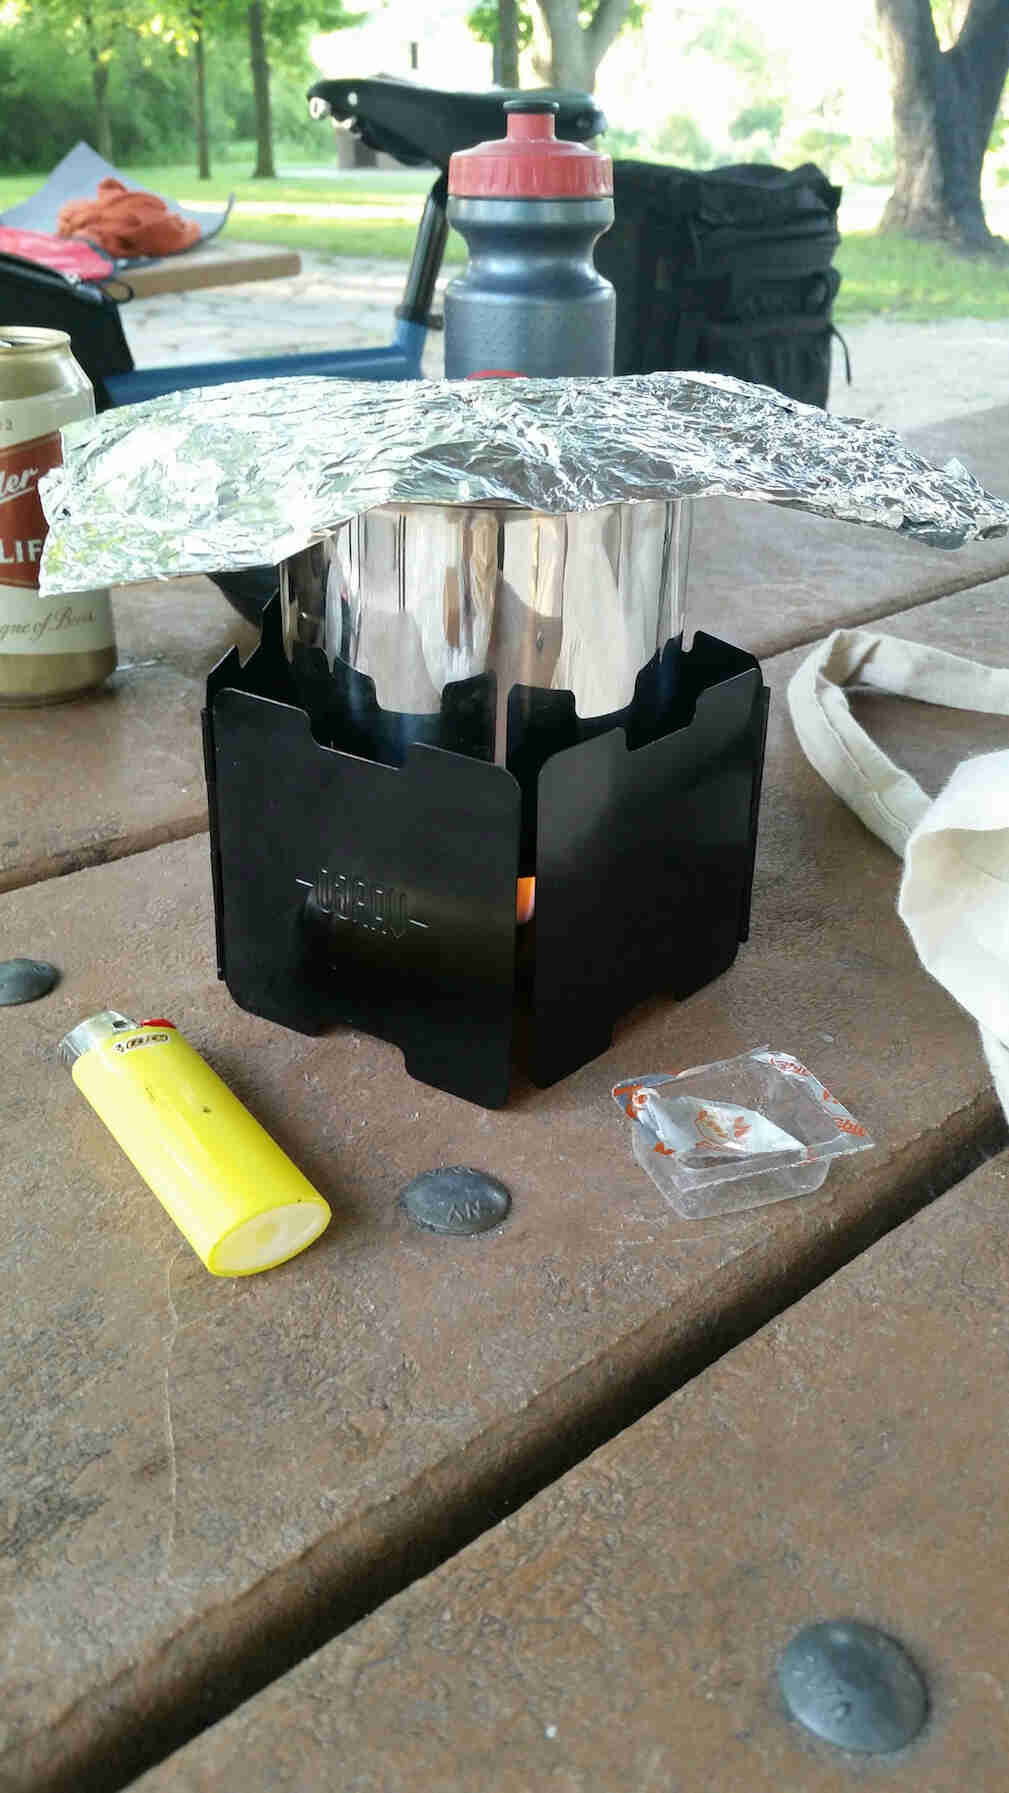 An Esbit table stove with next to a yellow Bic lighter, on top of a picnic table with a bike in the background